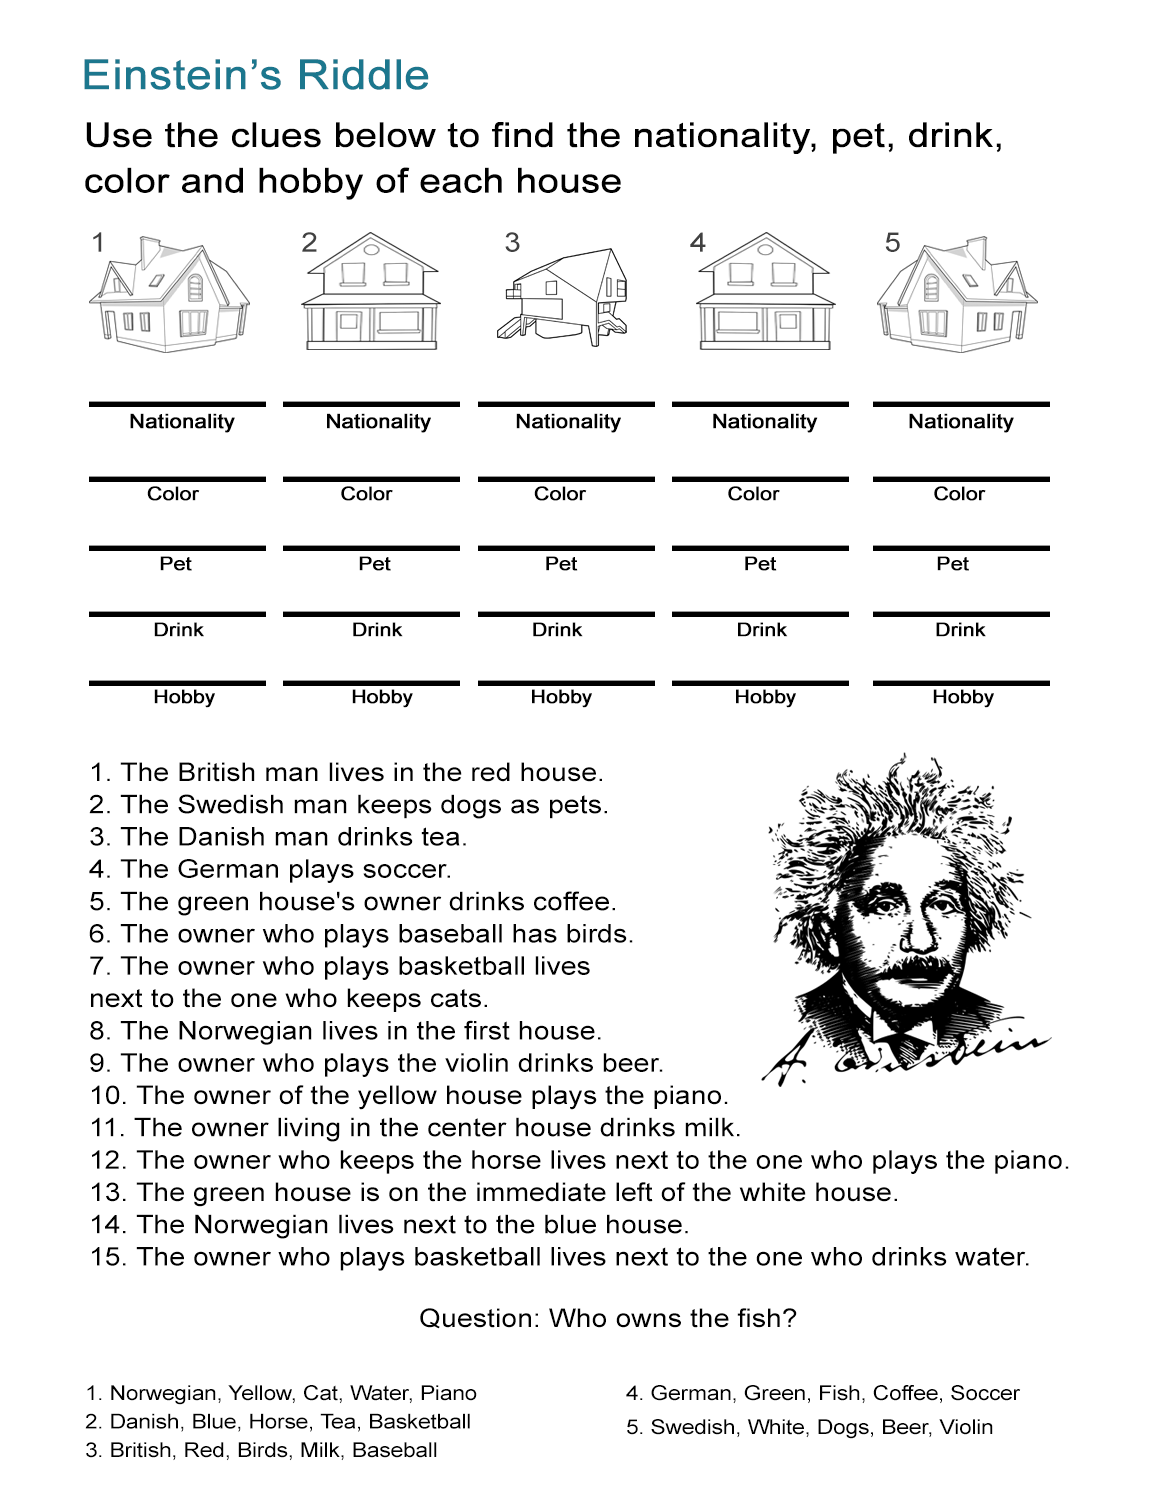 Worksheets Riddle Worksheets einsteins riddle detective style logic activity all esl activity